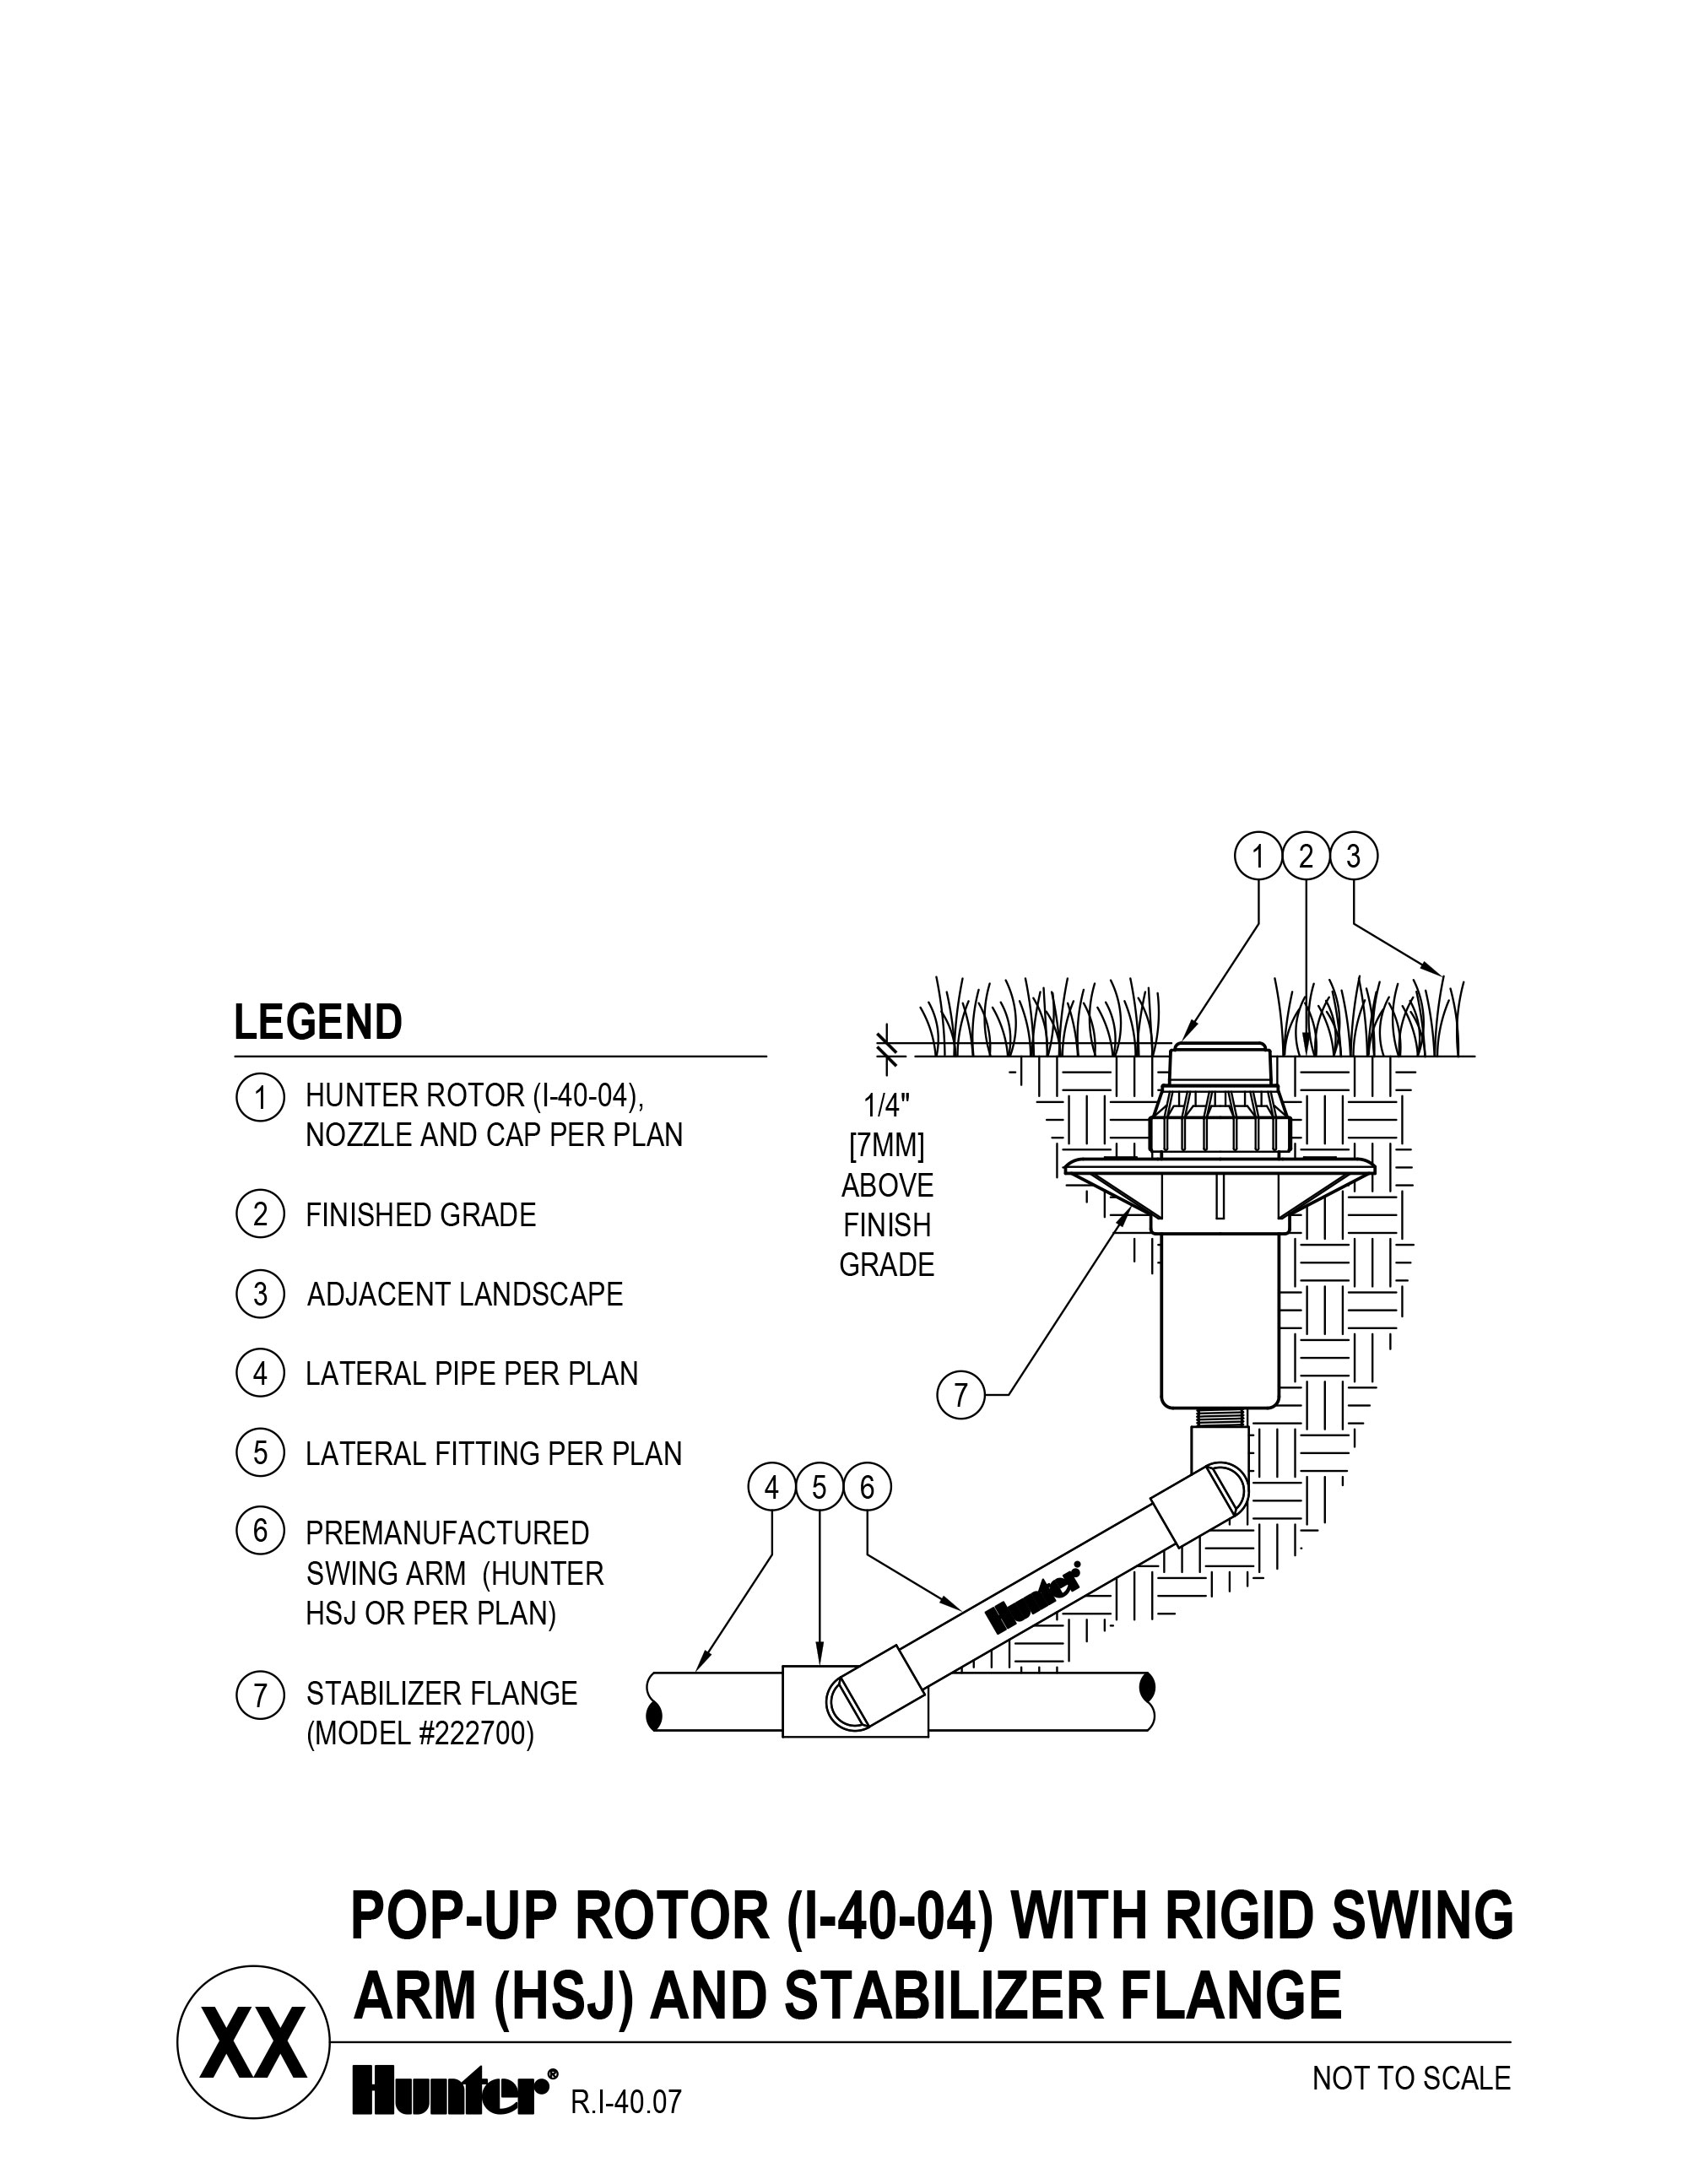 CAD - I-40-04 - Pop-up Rotor with Rigid Swing Arm (HSJ) and Stabilizer Flange